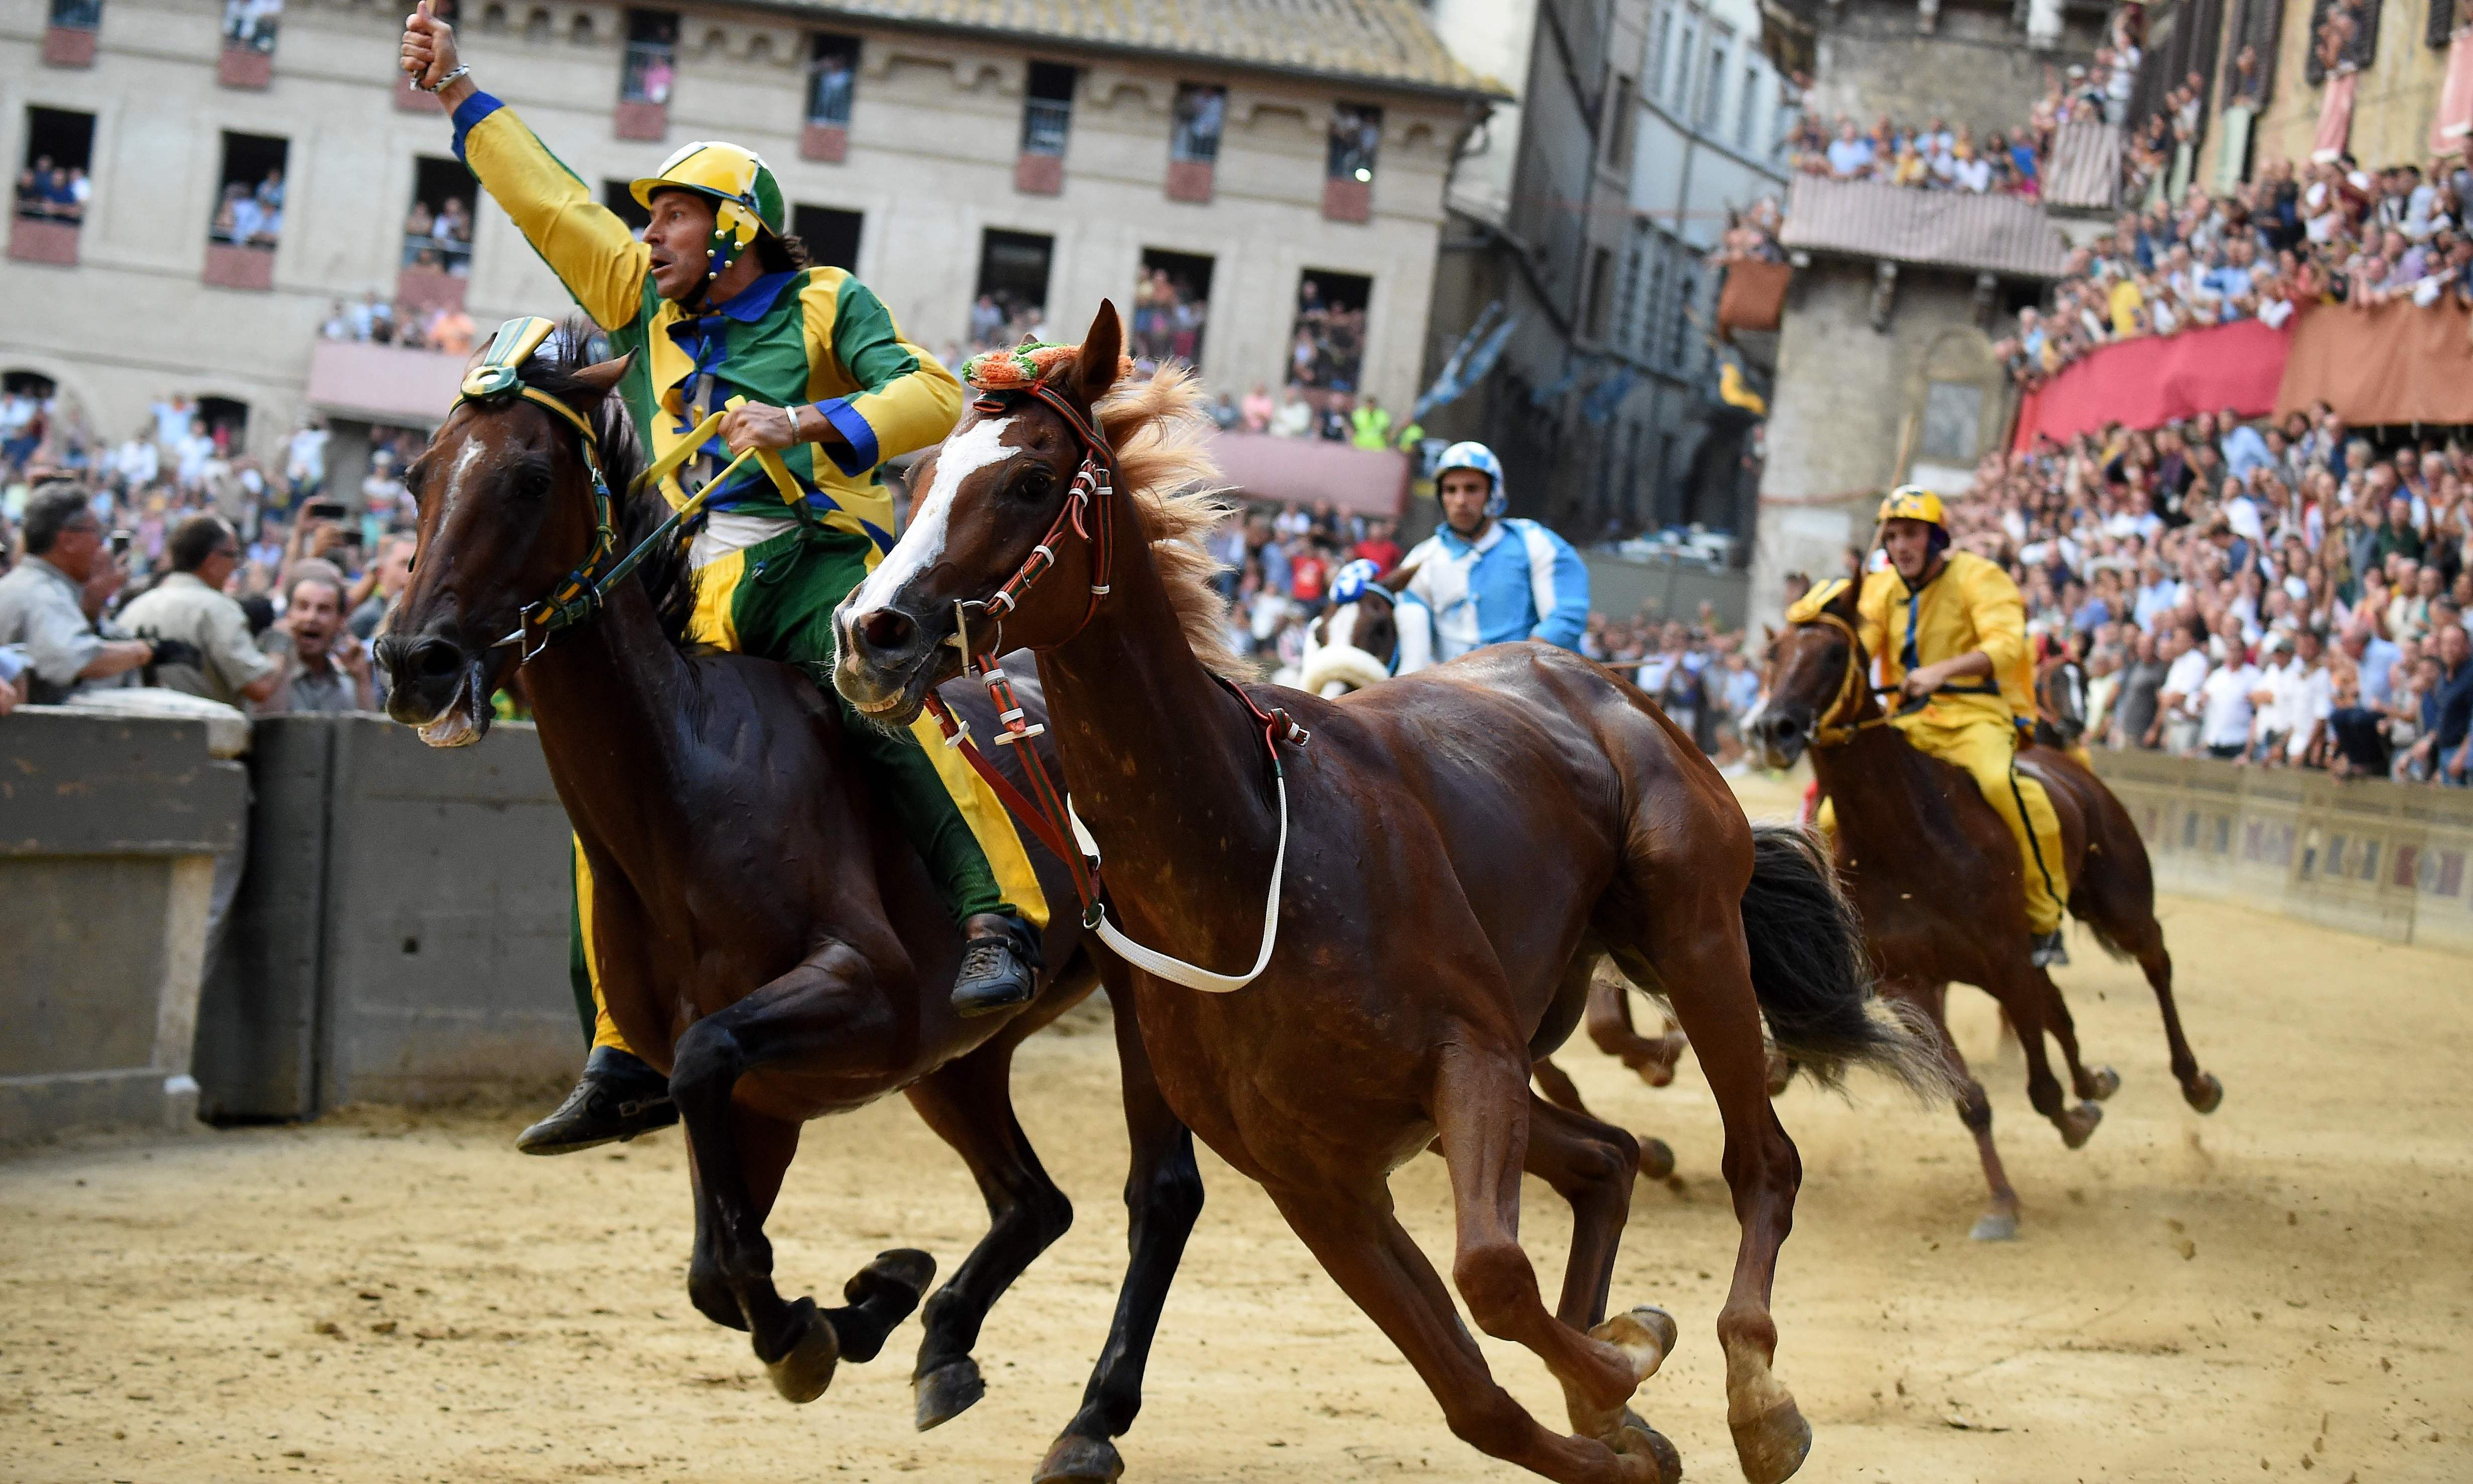 Talking Horses: how Remorex won the Palio di Siena without his jockey